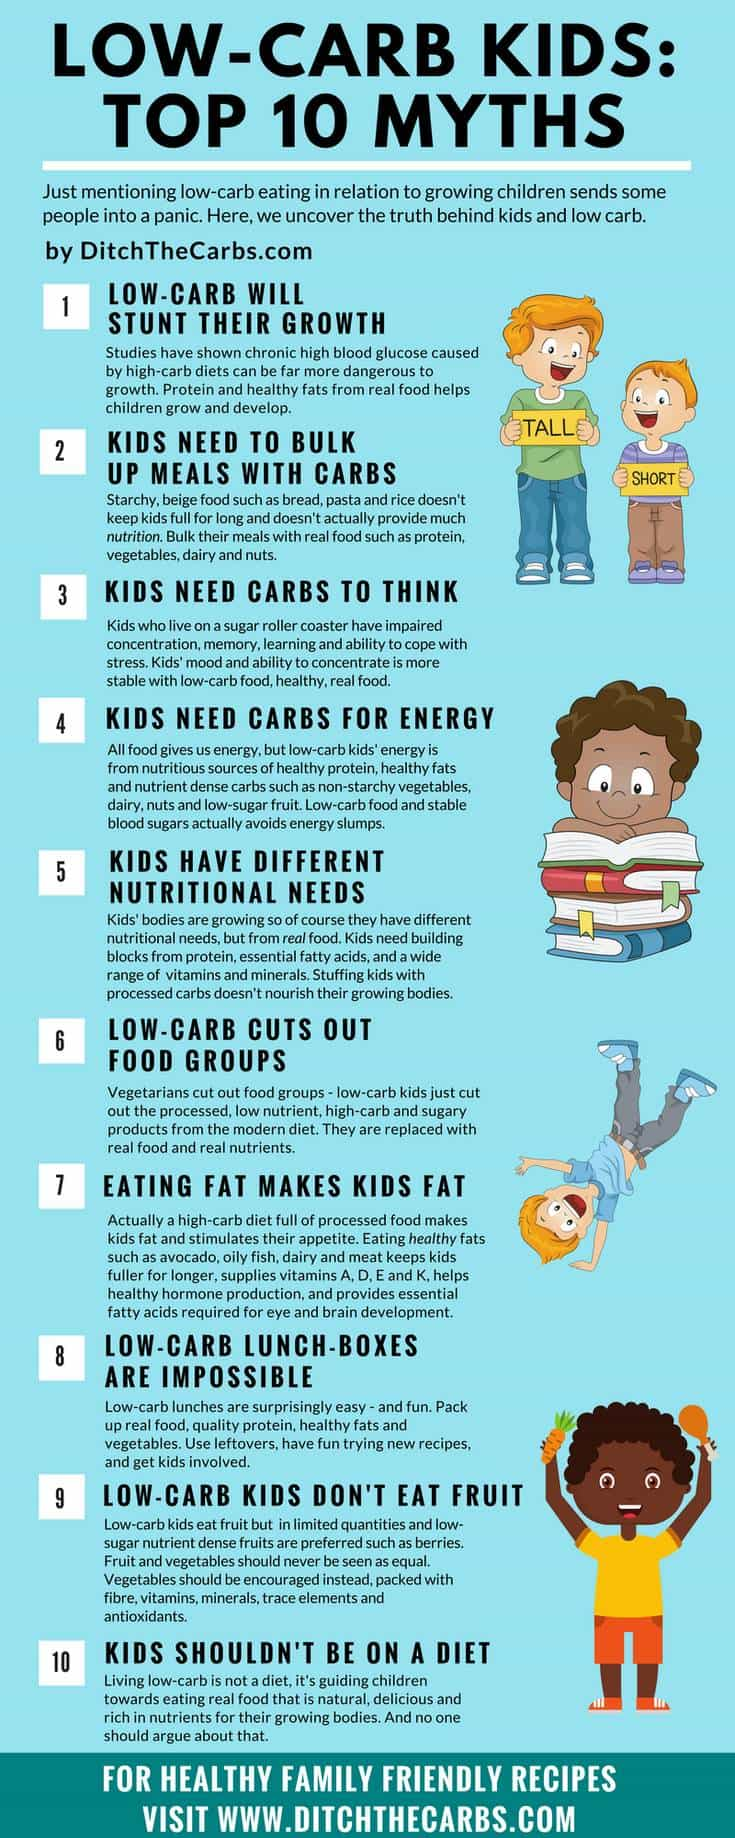 Take a look at the top 10 myths about low-carb kids. Low-carb real food is healthy and extremely nutritious. Learn how healthy it is to be a low-carb kid.   ditchthecarbs.com